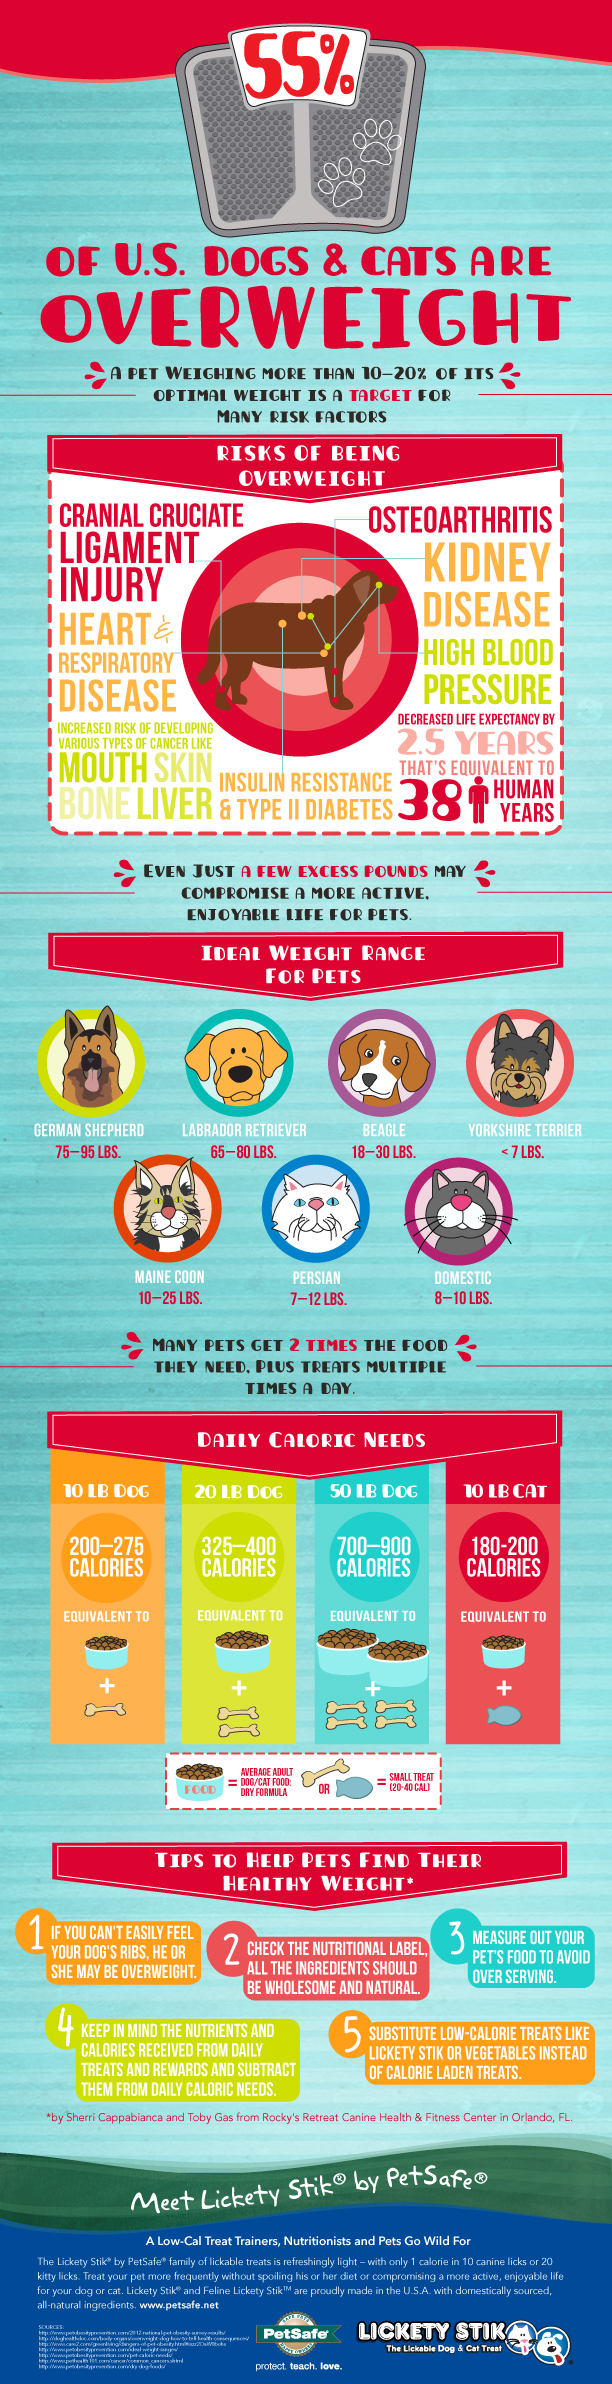 Pet Obesity in America infographic by PetSafe